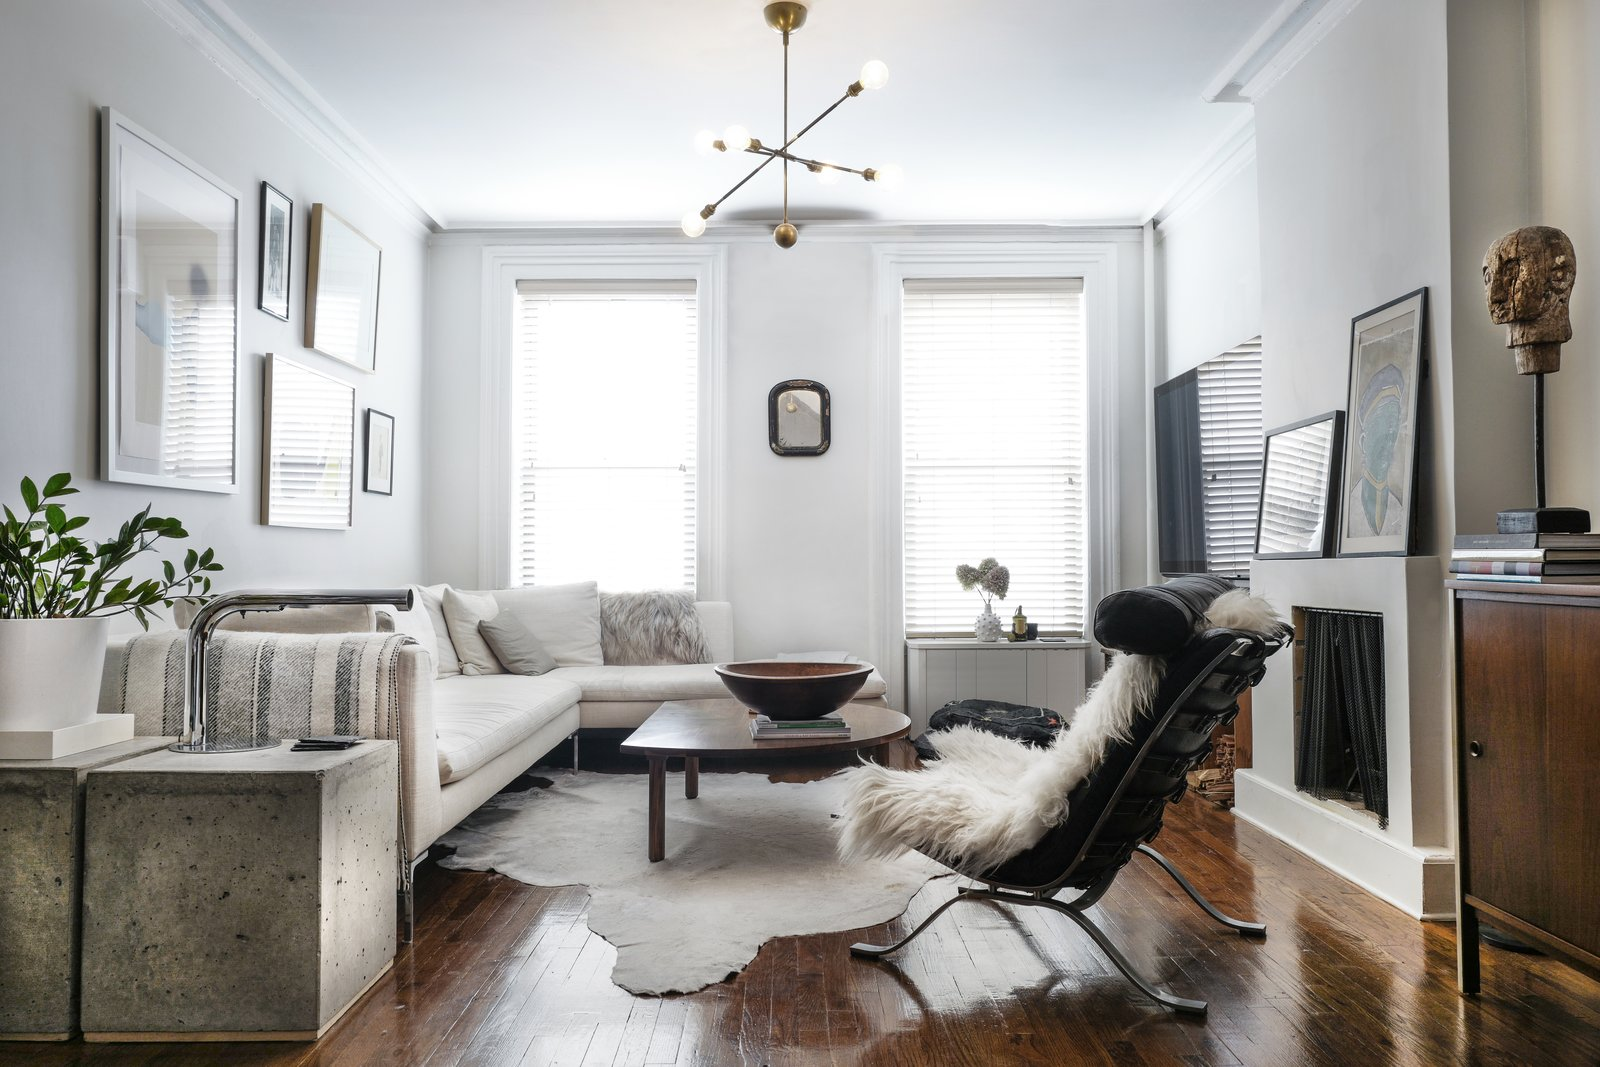 Living Room, Sectional, Media Cabinet, Dark Hardwood Floor, Chair, Standard Layout Fireplace, Wood Burning Fireplace, End Tables, Coffee Tables, Storage, and Pendant Lighting  Photo 4 of 16 in A Design Duo's 19th-Century Brooklyn Townhouse Is Filled With Art They Love